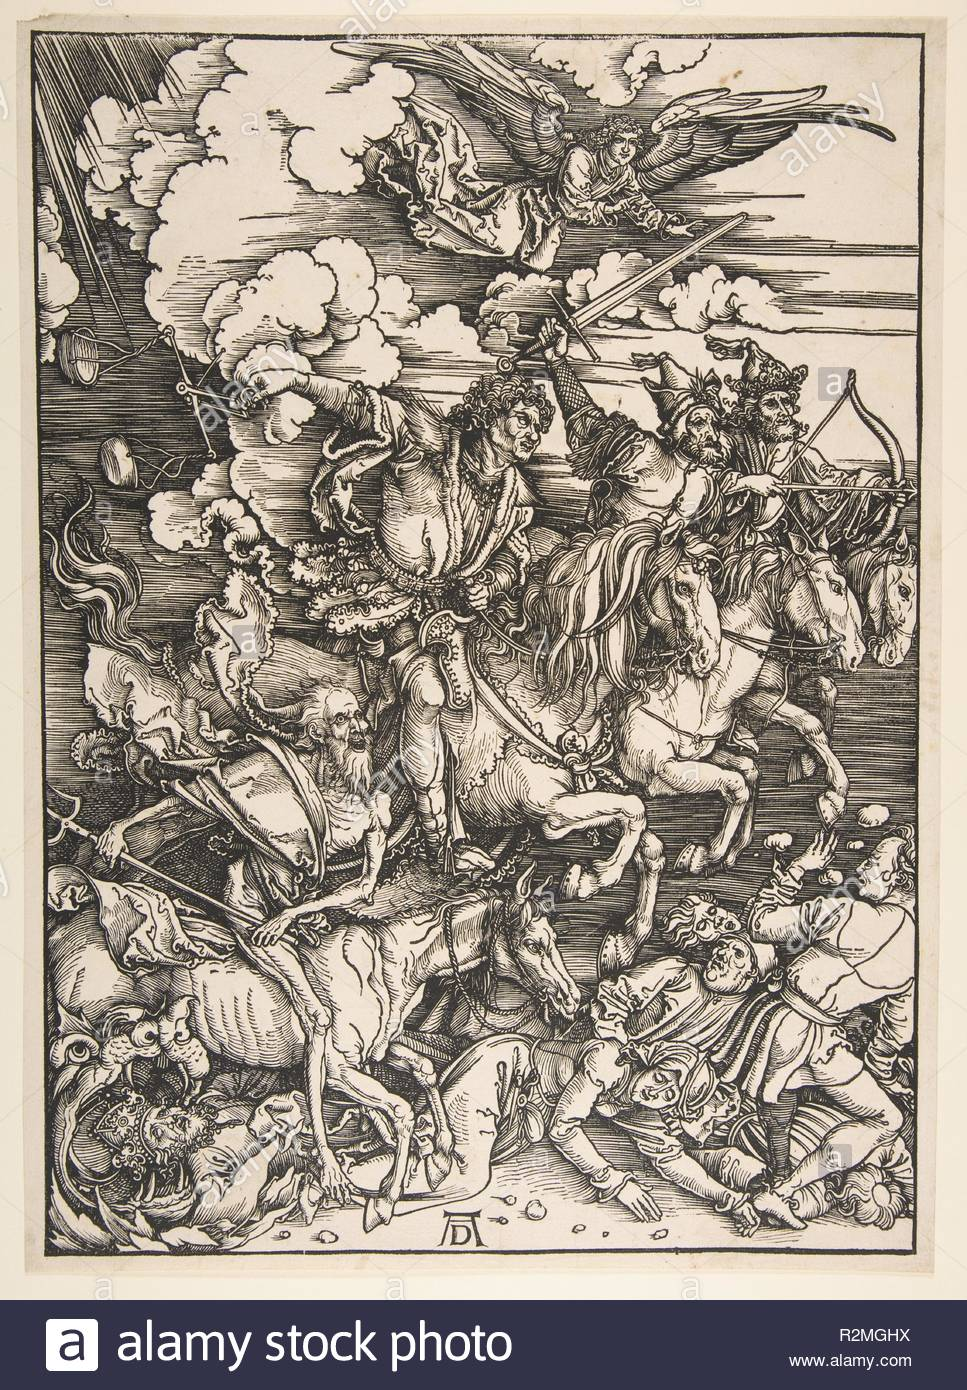 Four Horsemen of the Apocalypse. Artist: Albrecht Dürer (German, Nuremberg 1471-1528 Nuremberg). Date: ca. 1497/1498.  The third woodcut from Dürer's Apocalypse, the Four Horsemen presents a dramatically distilled version of the passage from the book of Revelation (6:1-8). Transforming what was a relatively staid and unthreatening image in earlier illustrated Bibles, Dürer injects motion and danger into this climactic moment through his subtle manipulation of the wood block. The parallel lines across the image establish a basic middle tone, against which the artist silhouettes and overlaps the - Stock Image